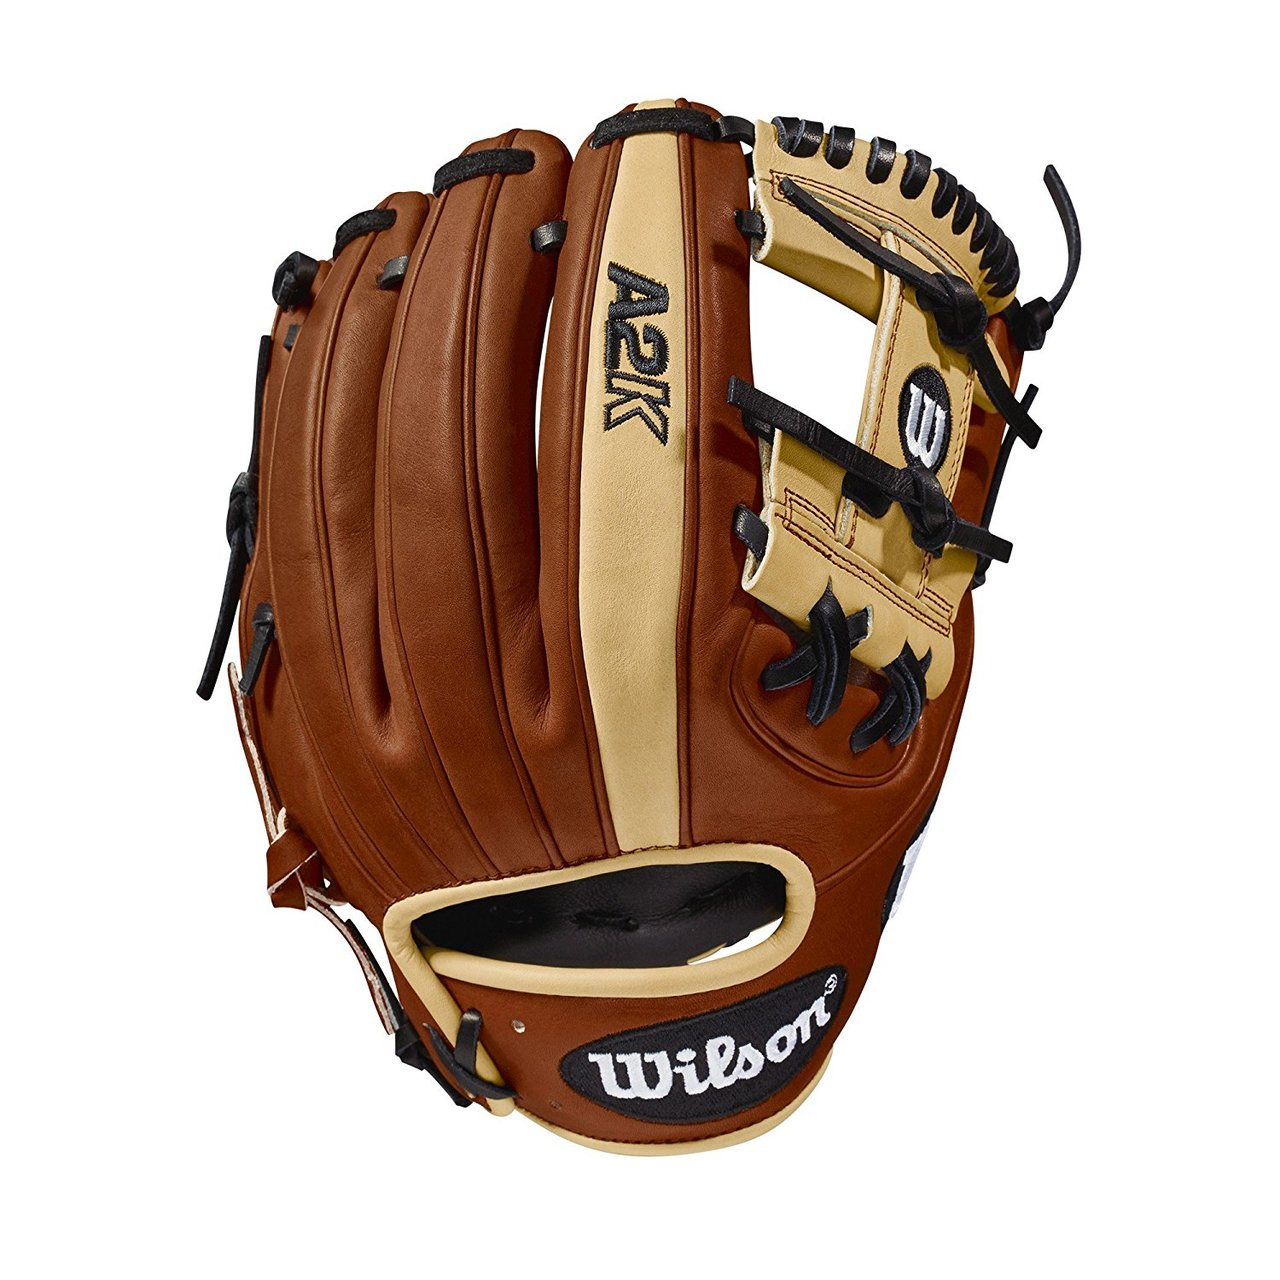 wilson-2018-a2k-1786-infield-baseball-glove-right-hand-throw-11-5-inch WTA2KRB181786-RightHandThrow Wilson 887768591991